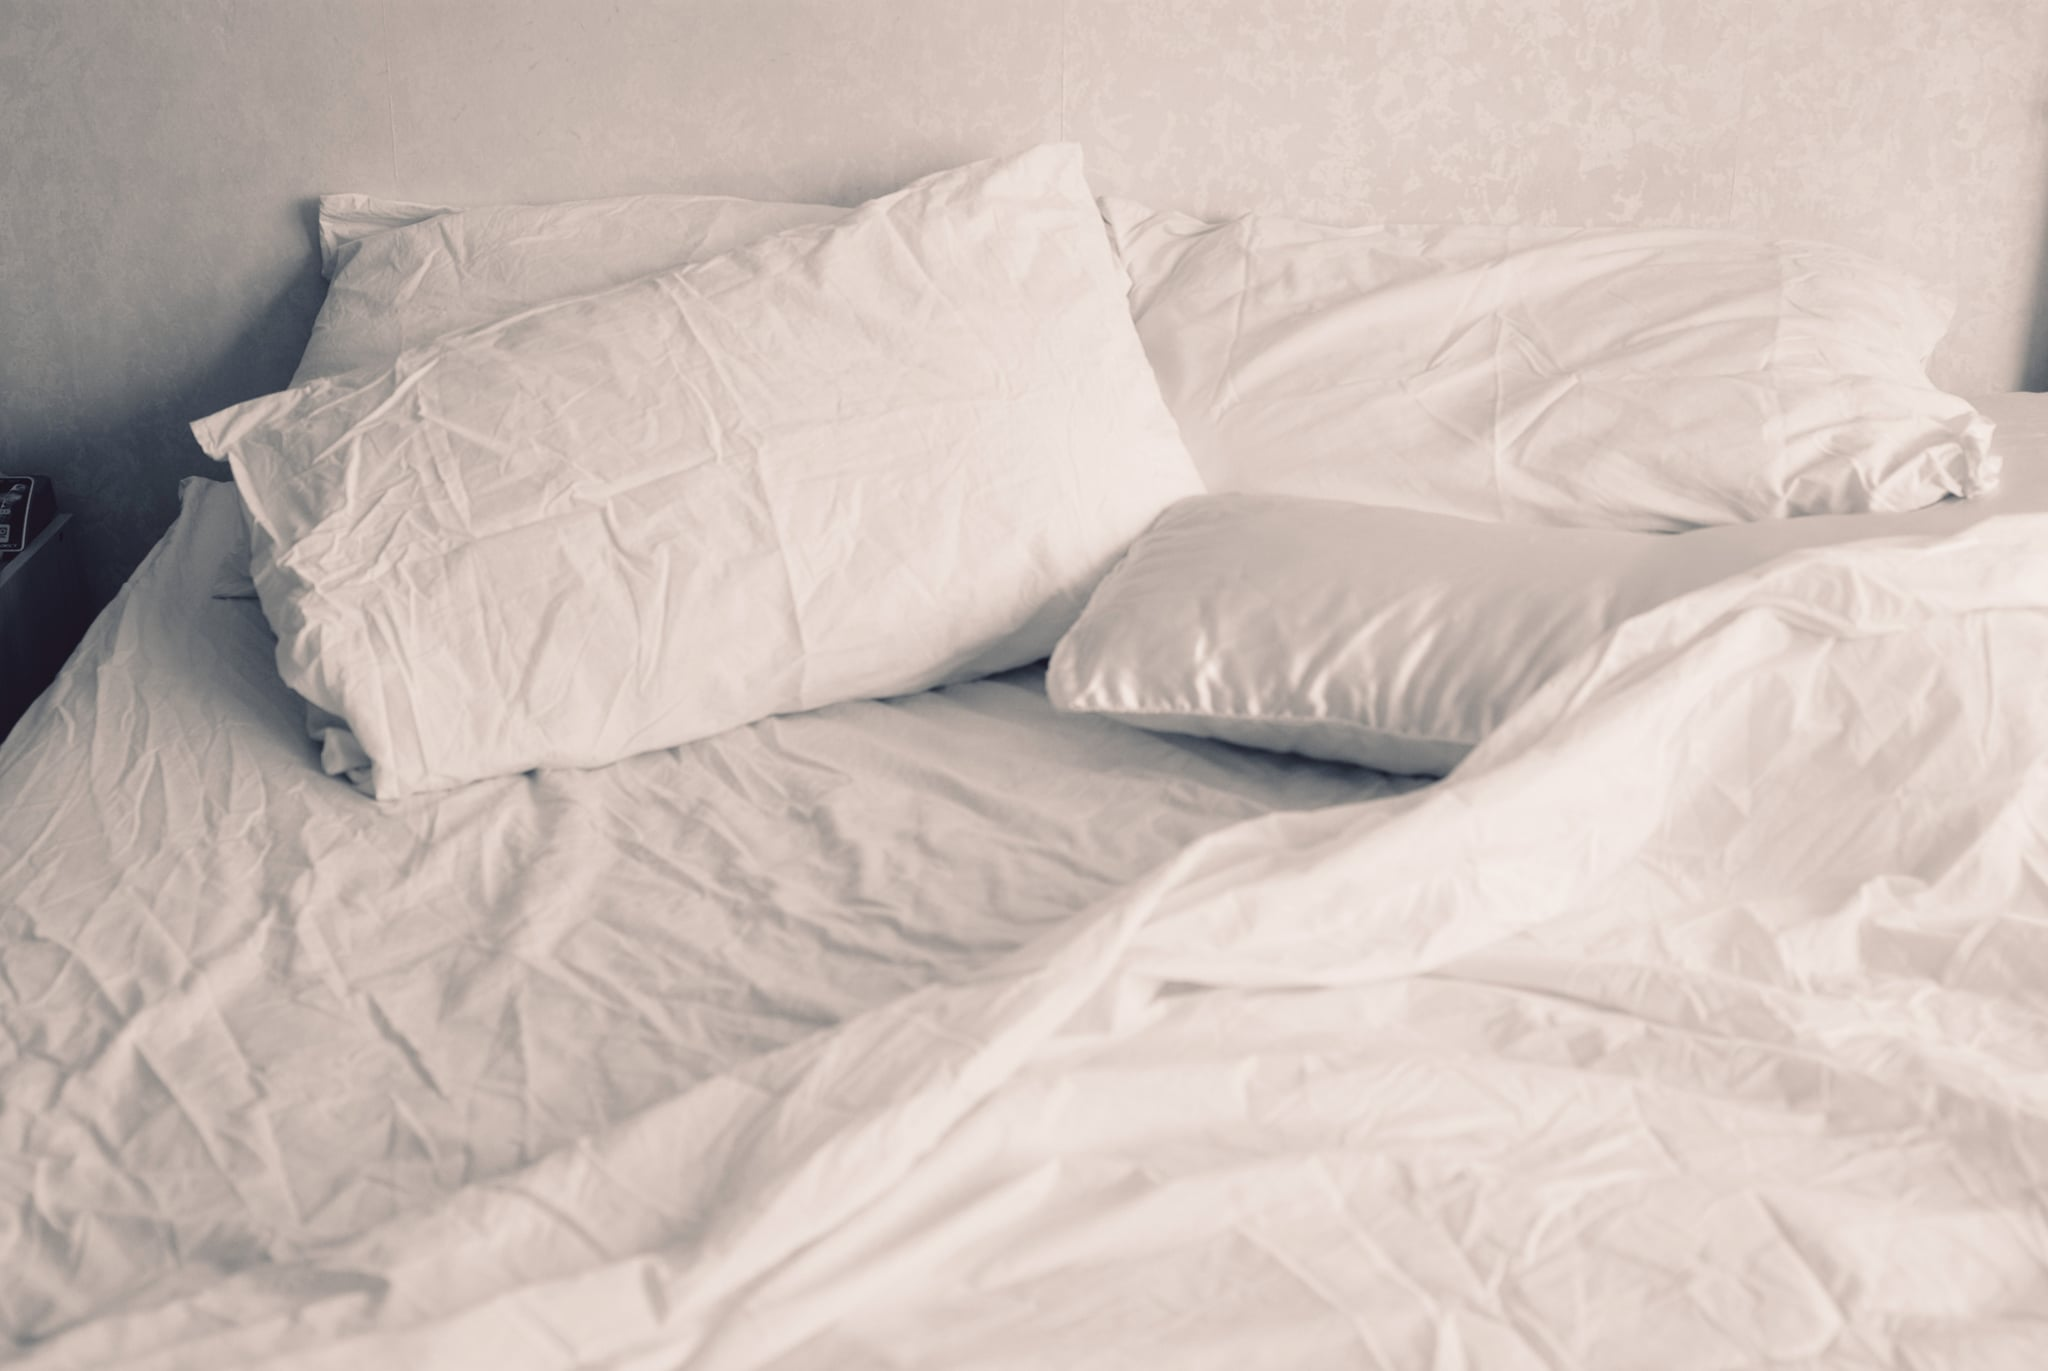 White linen of an unmade bed.